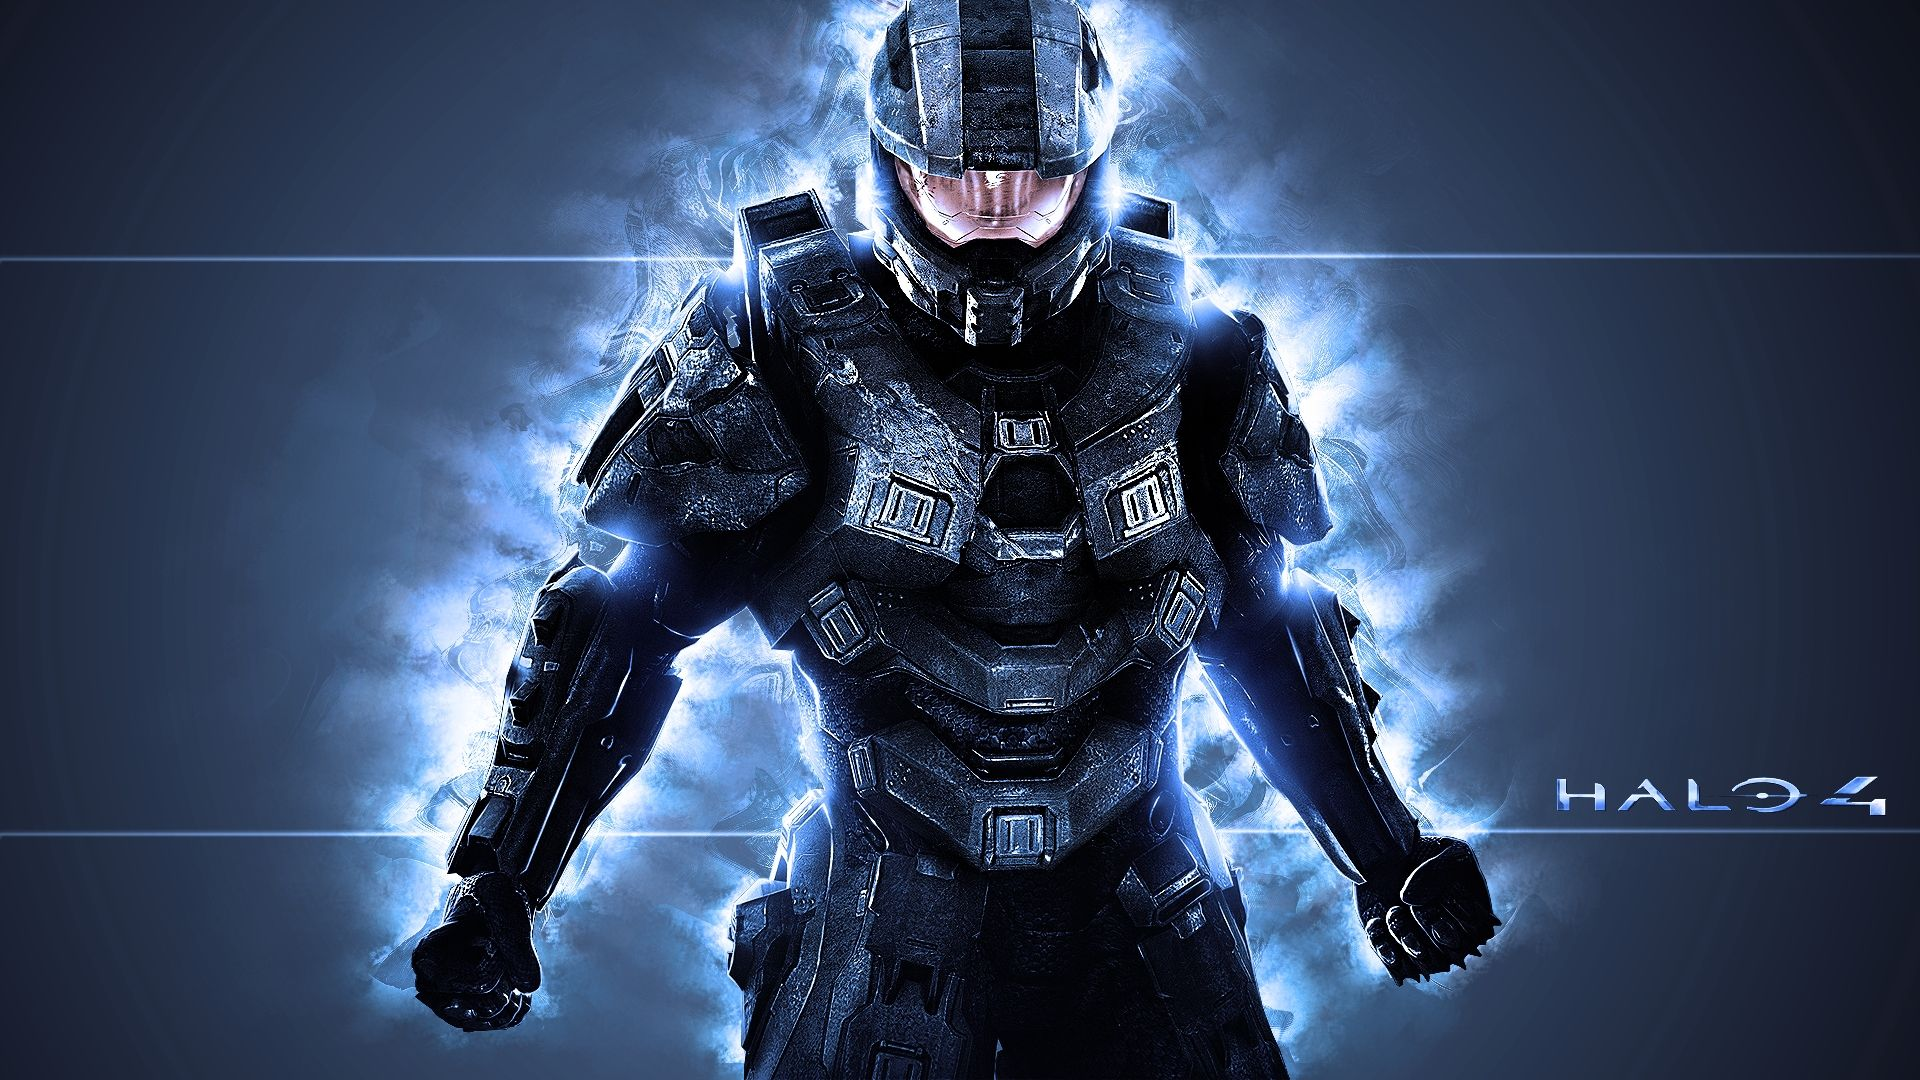 cool halo Wallpaper HD Download - Free cool halo Wallpaper Download Download cool halo Wallpaper HD Download | from the above display resolutions for HD ...